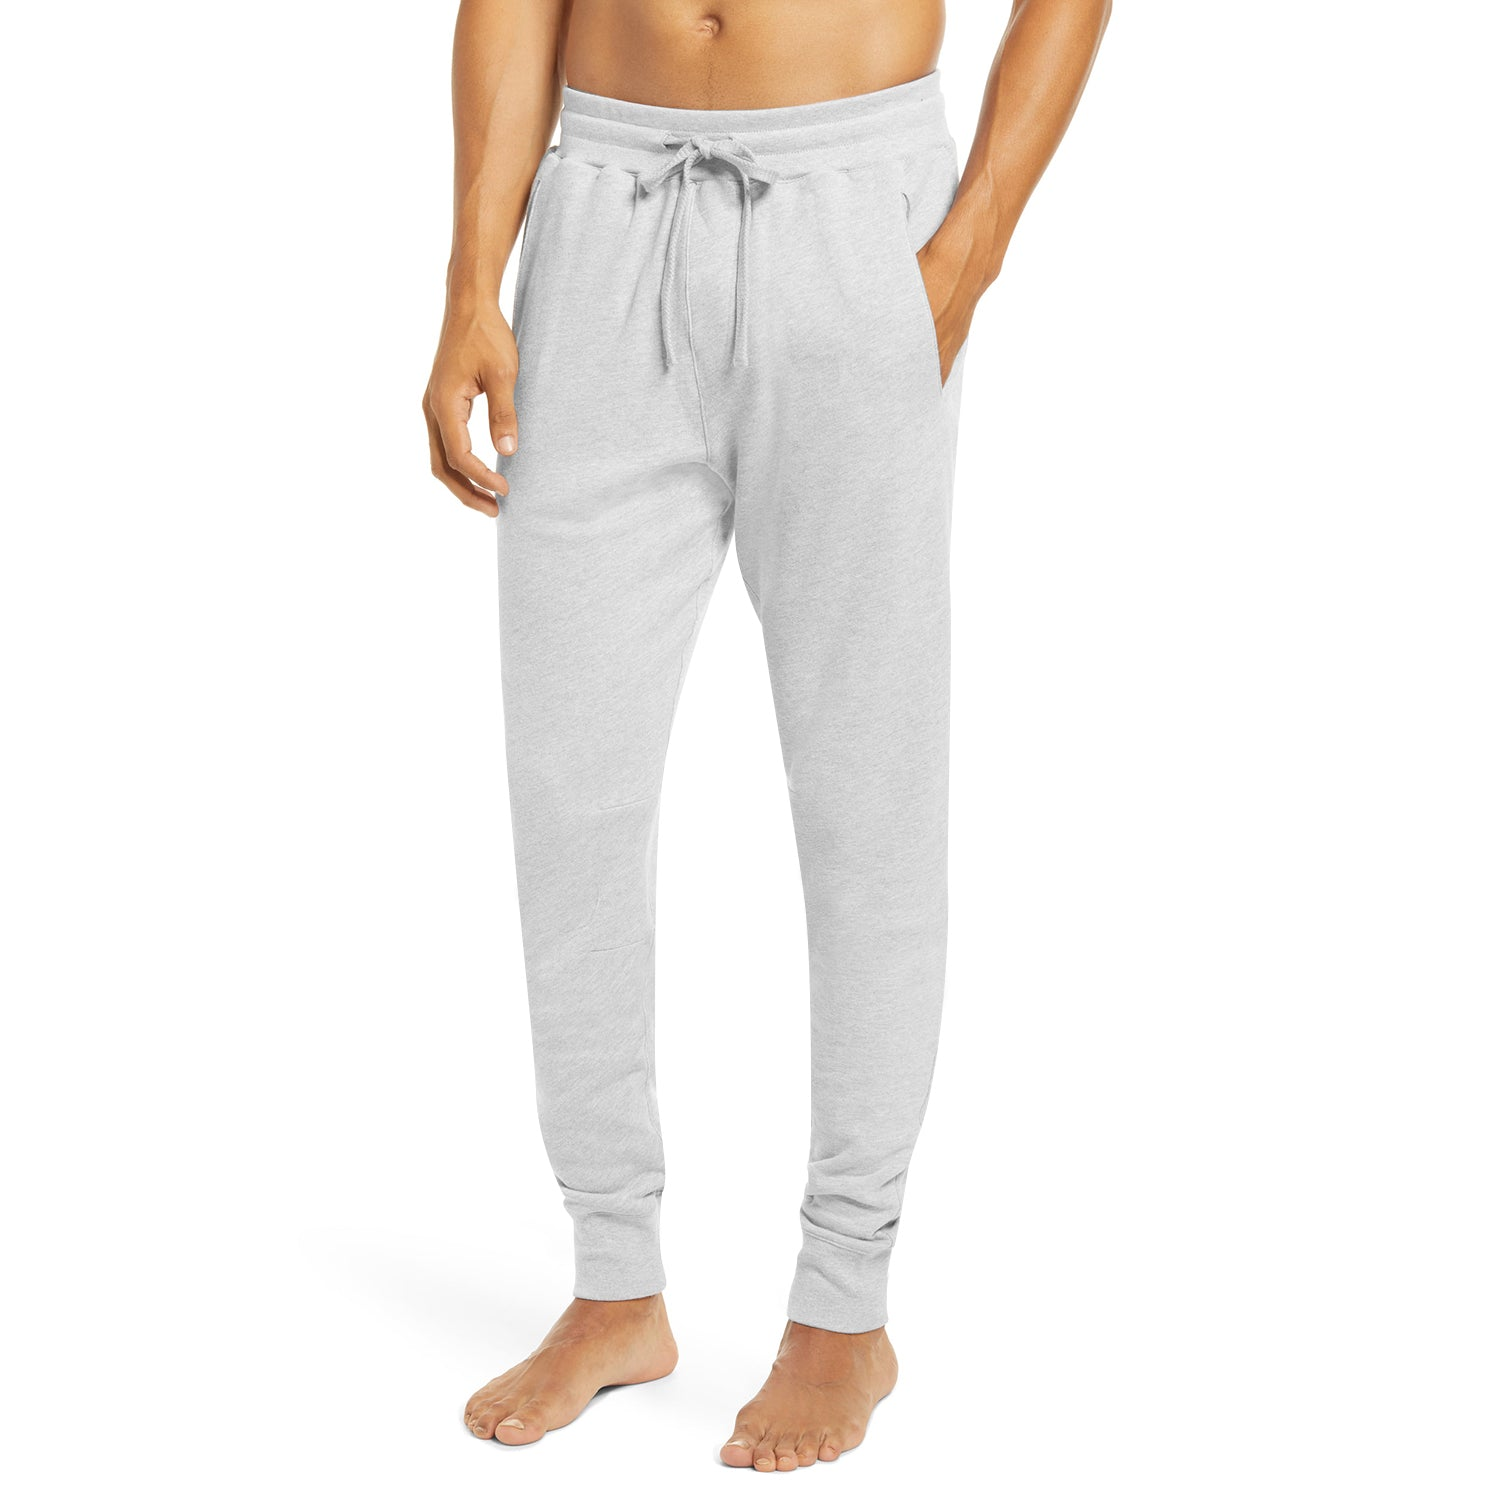 Vindaloo Fleece Slim Fit Pant Style Jogging Trouser For Men-Grey Melange-BE12883